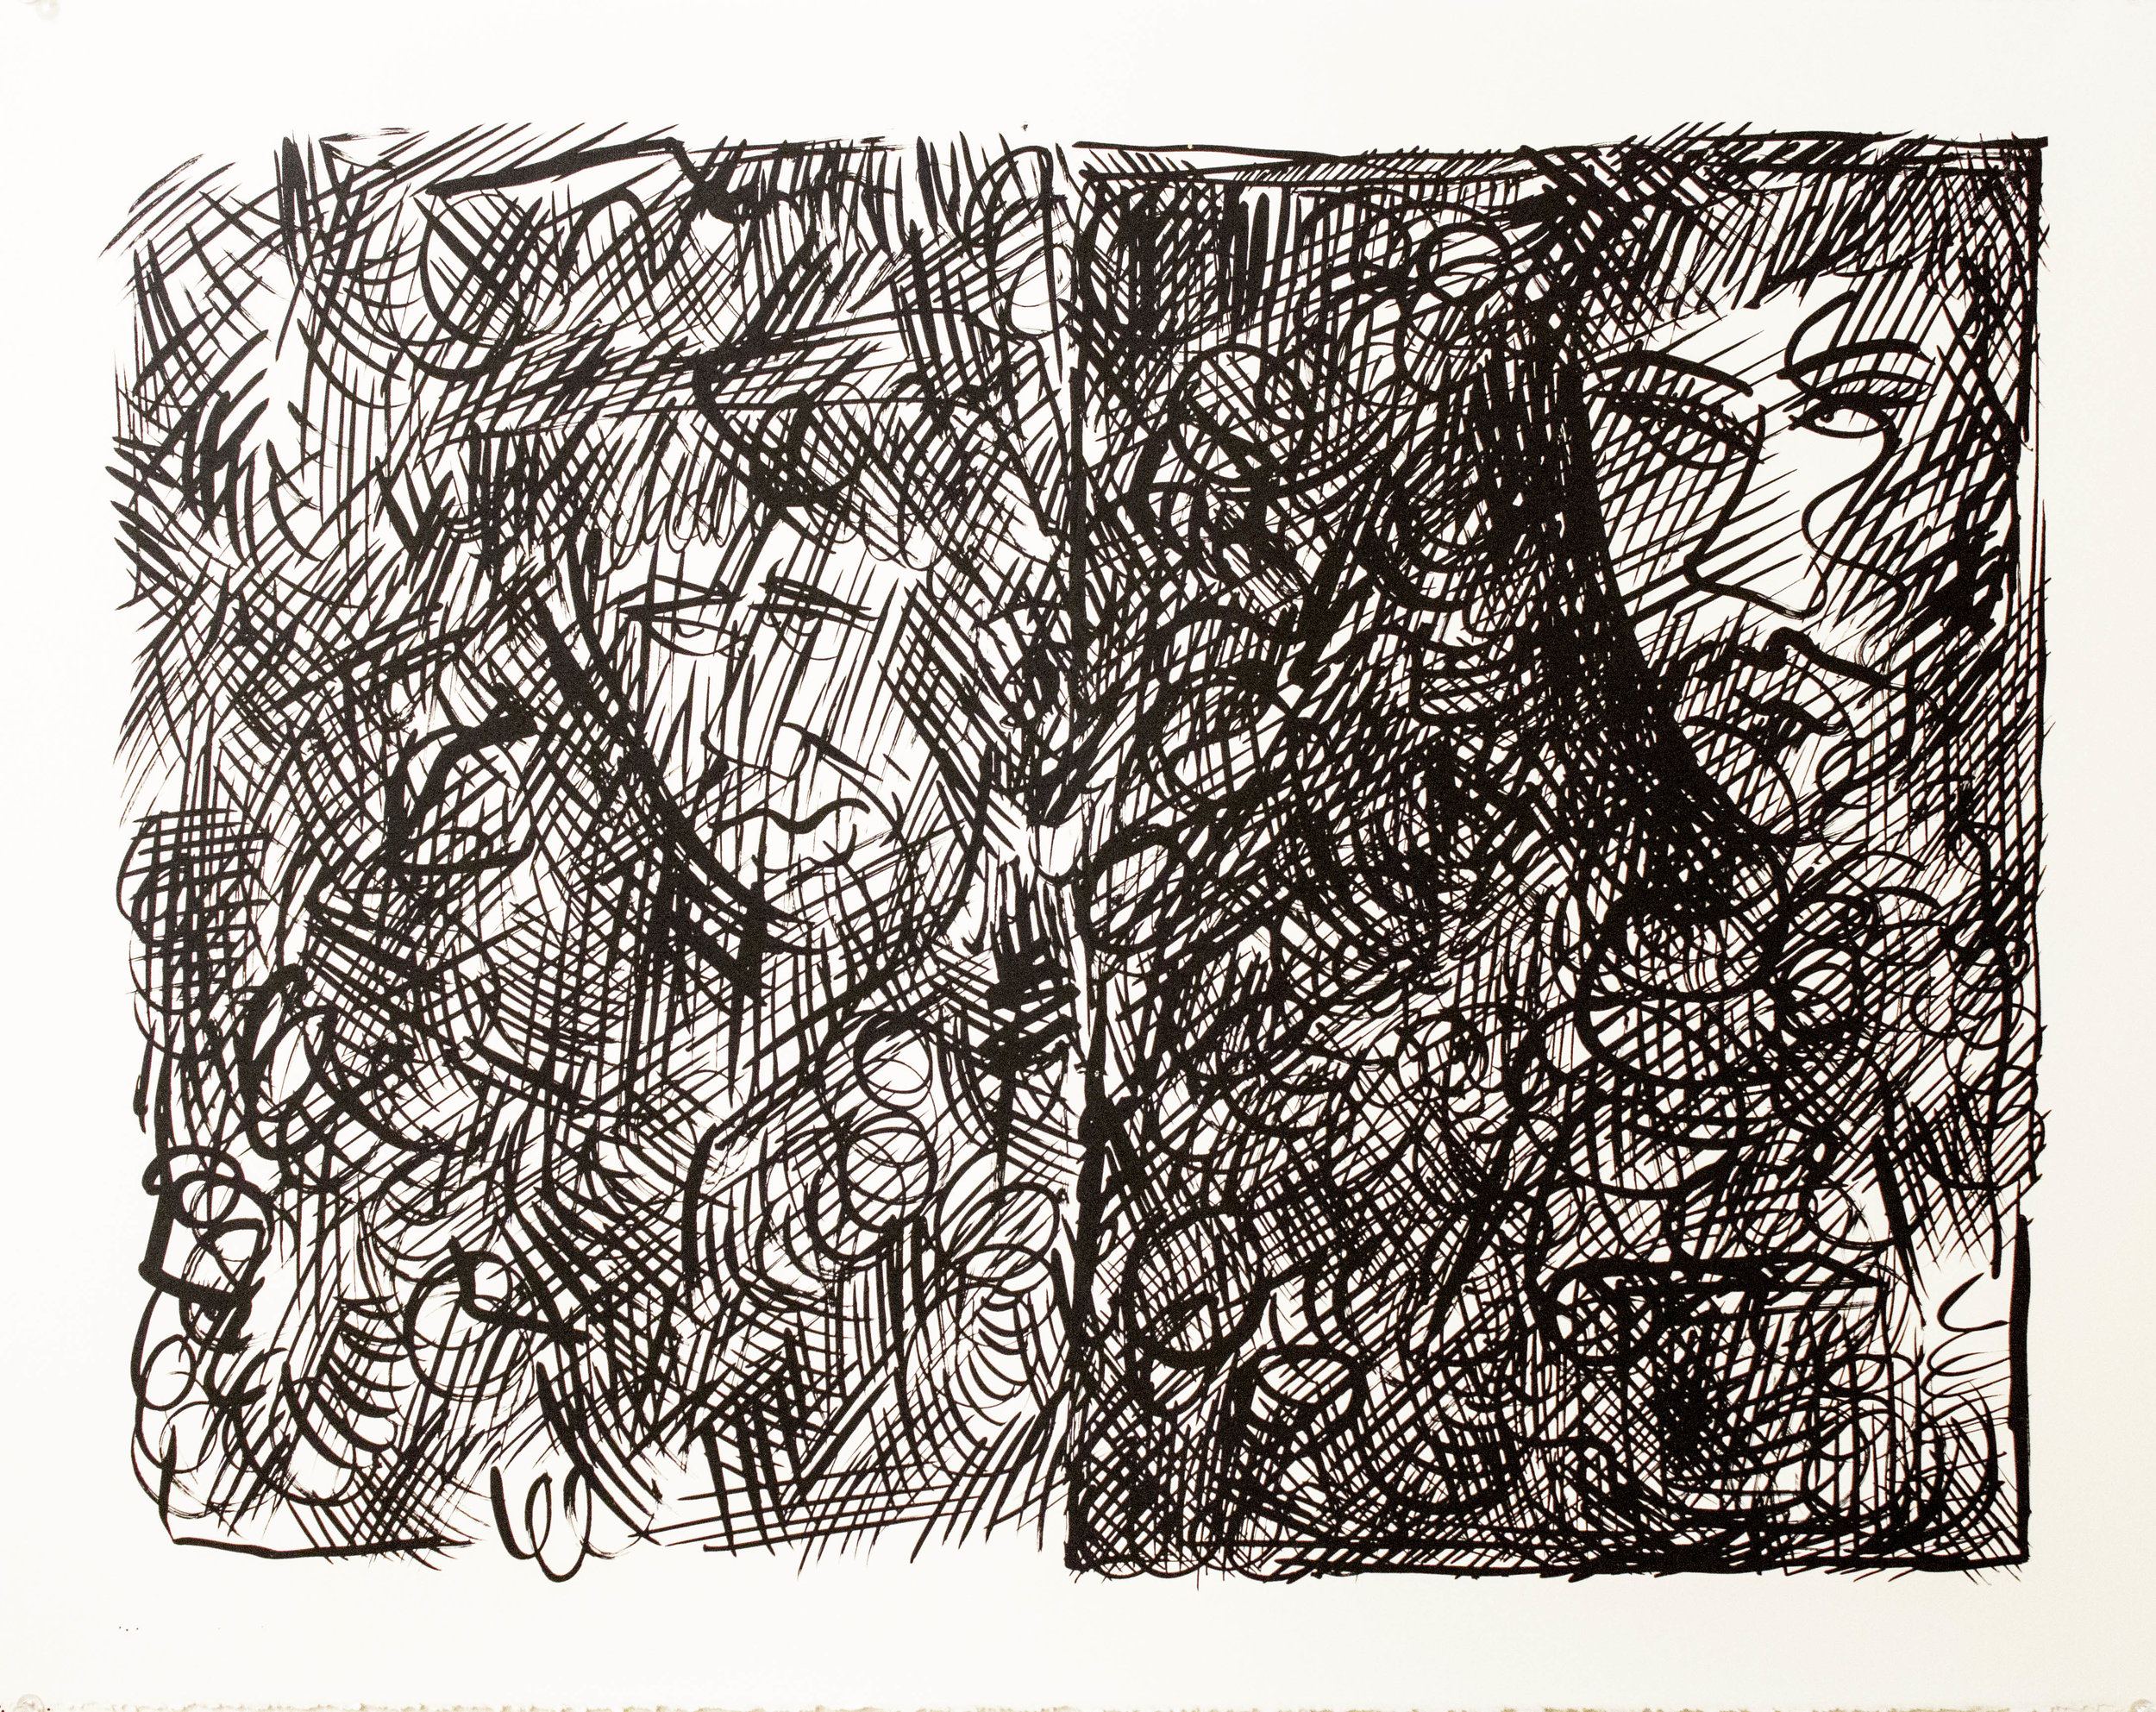 Untitled (Brush and Ink Study)